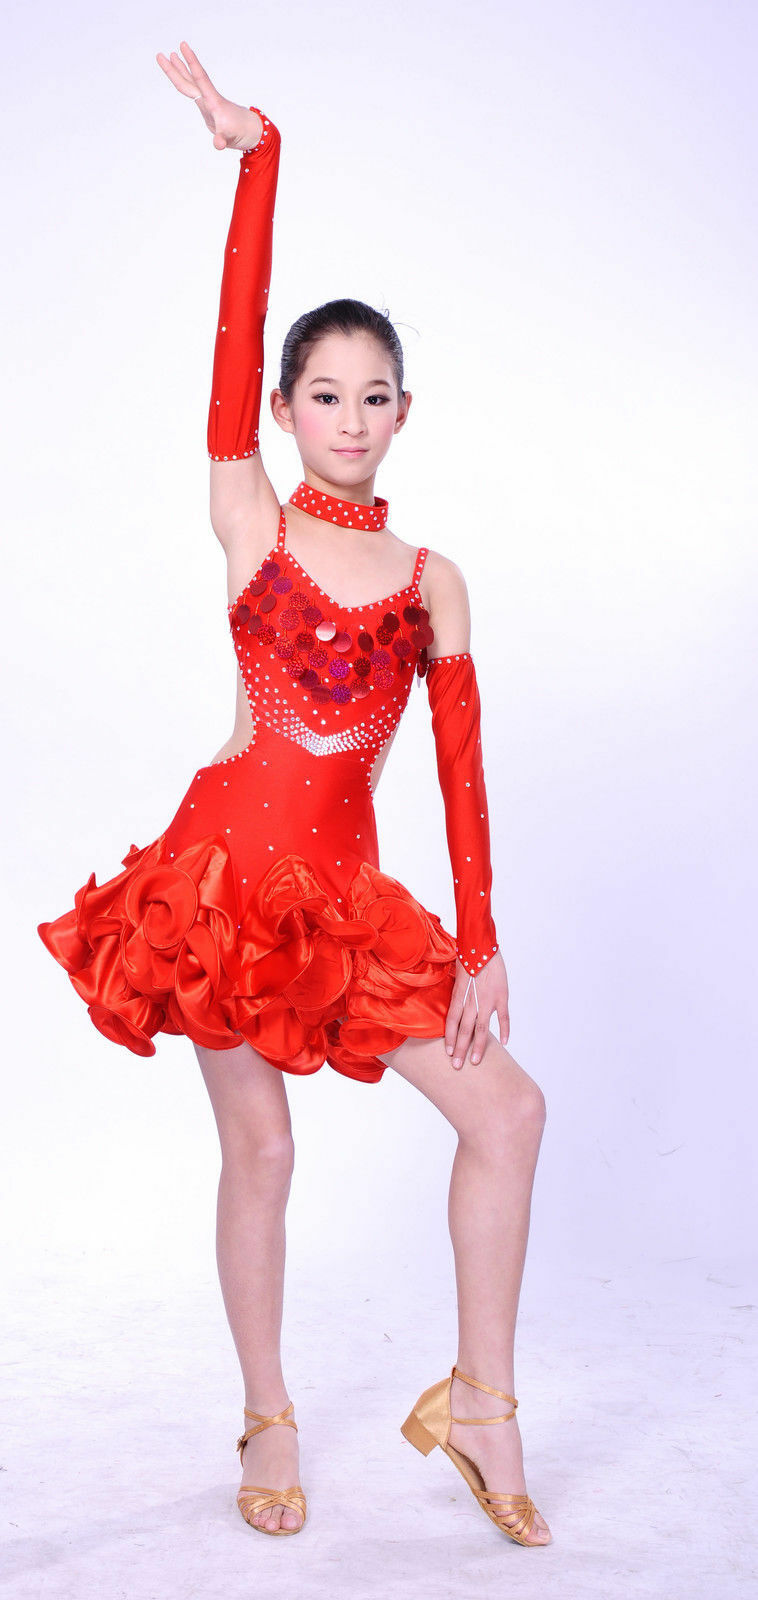 COMPETITION ICE DANCE FIGURE SKATING DRESS Salsa Tango Red  w Crystals Adult XL  honest service